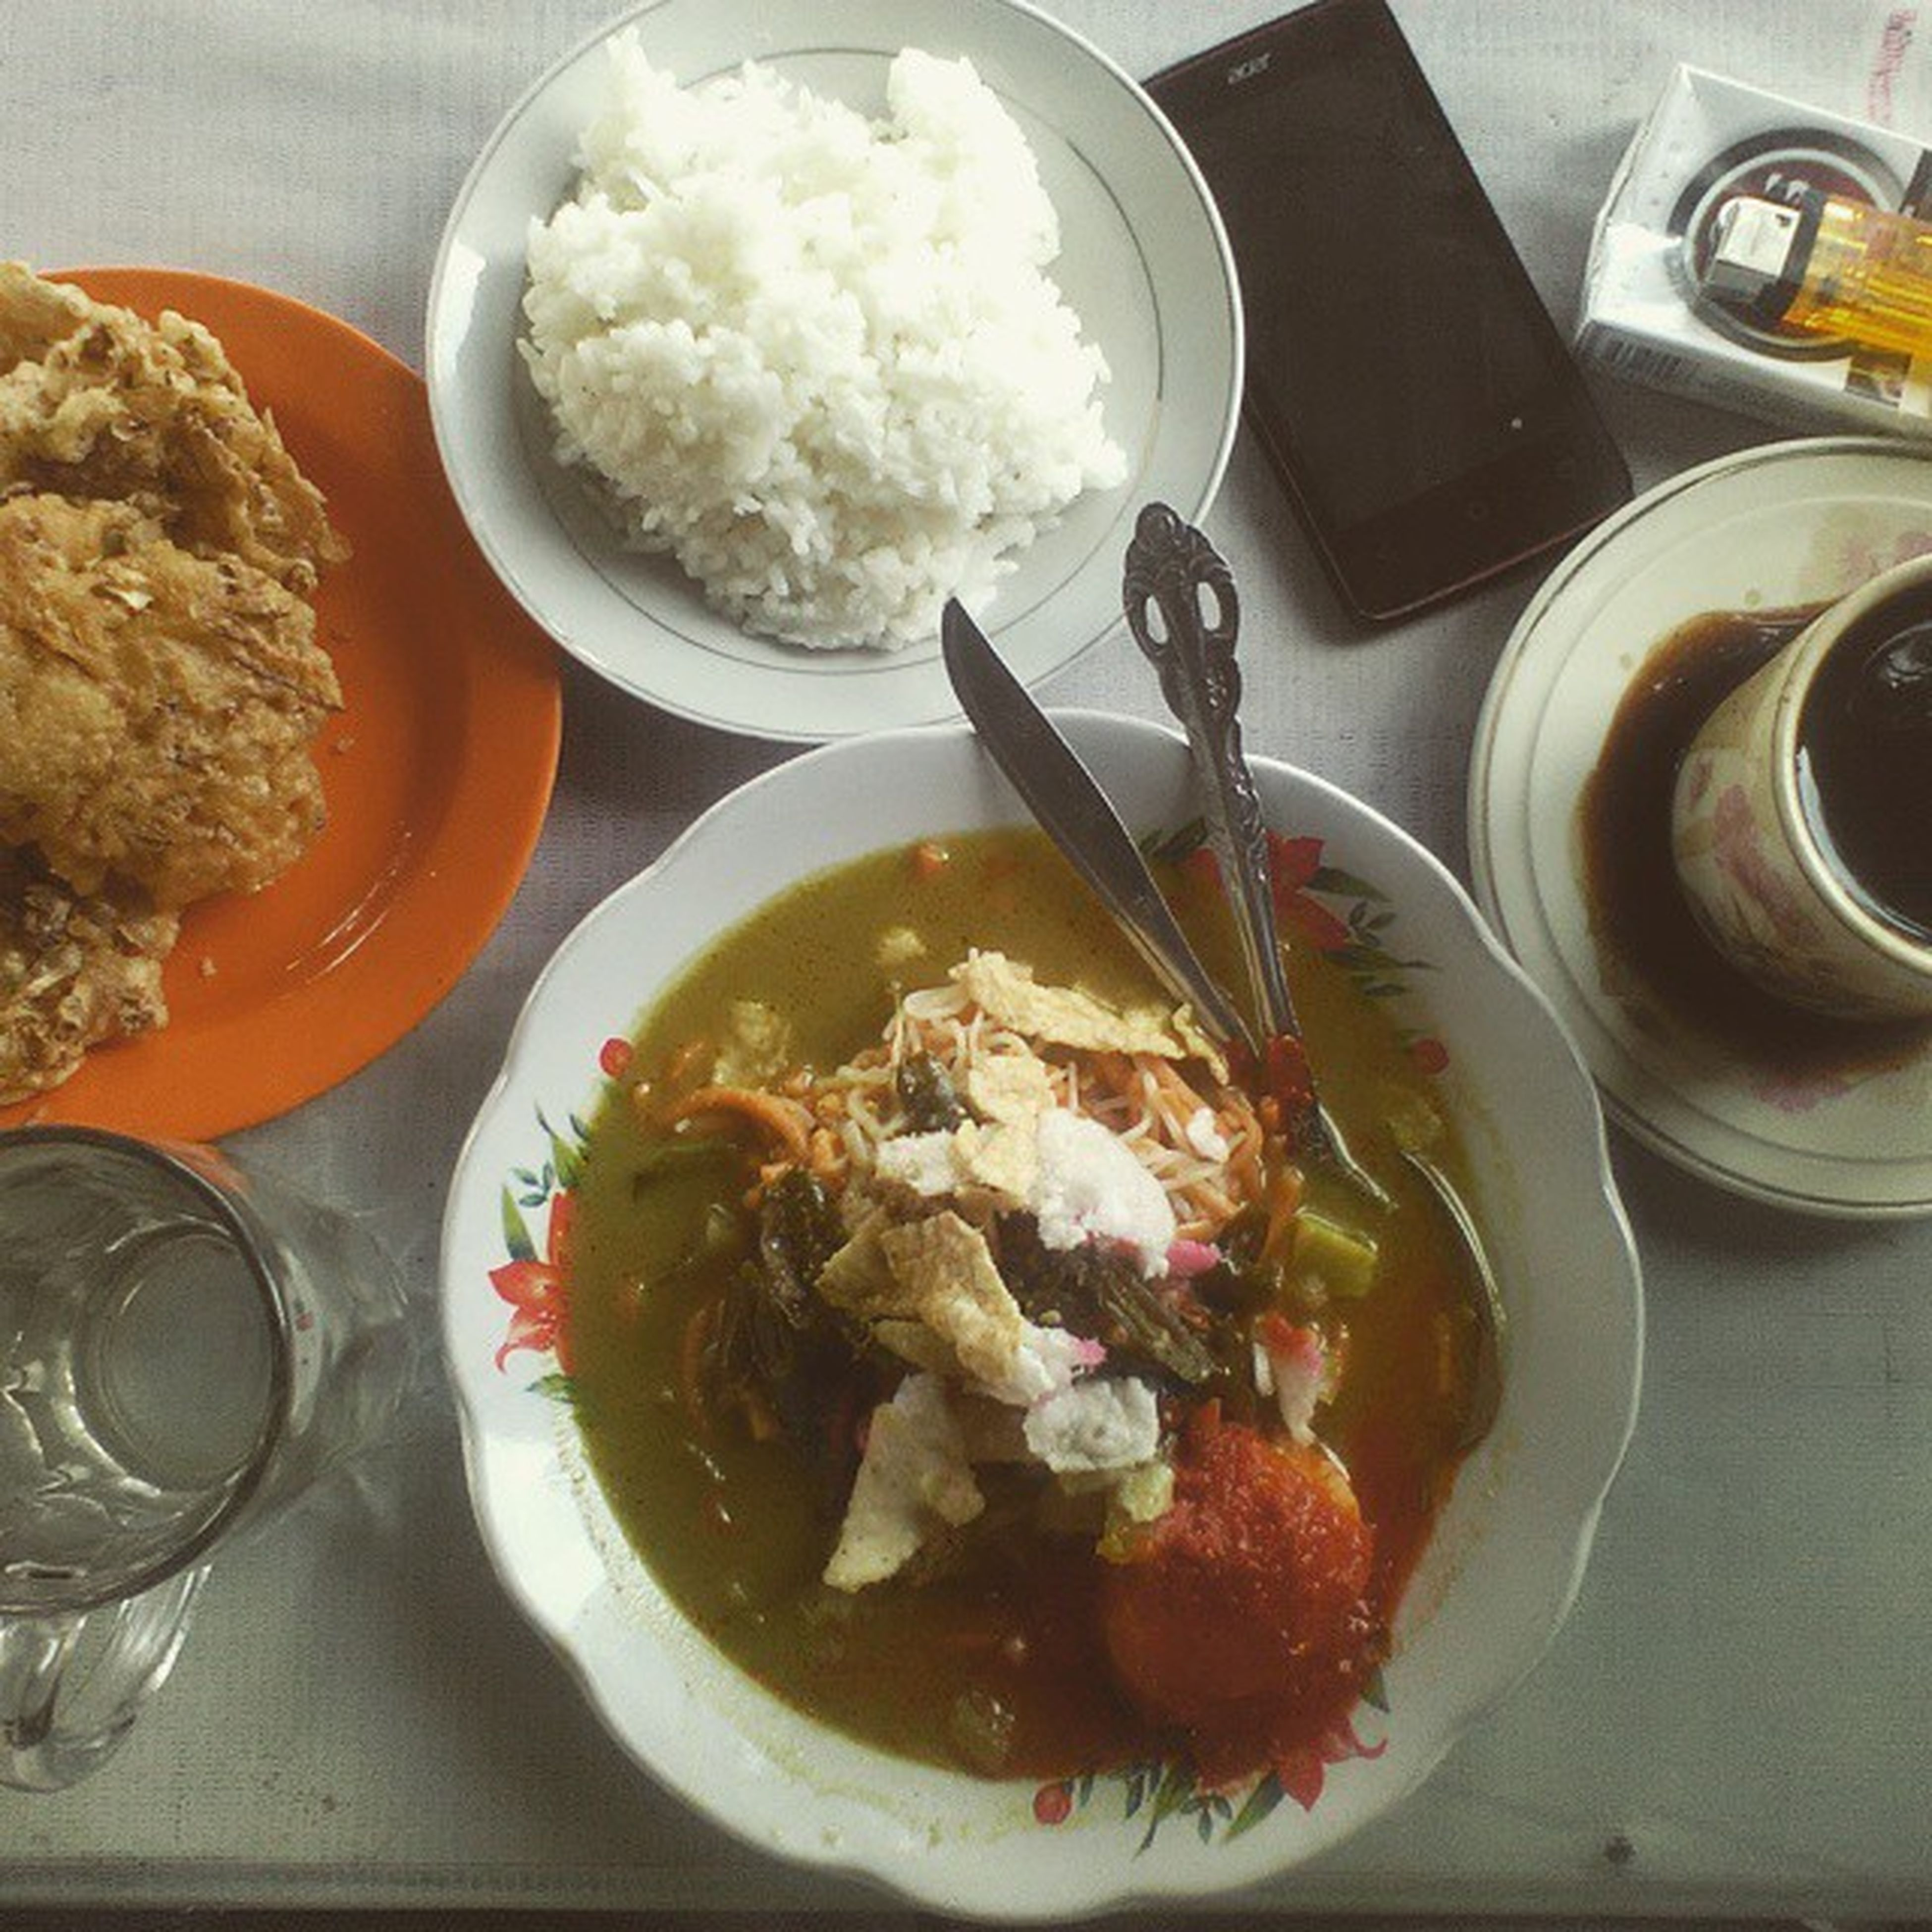 food and drink, food, freshness, indoors, ready-to-eat, plate, healthy eating, serving size, still life, meal, table, bowl, high angle view, served, meat, fork, close-up, indulgence, spoon, lunch